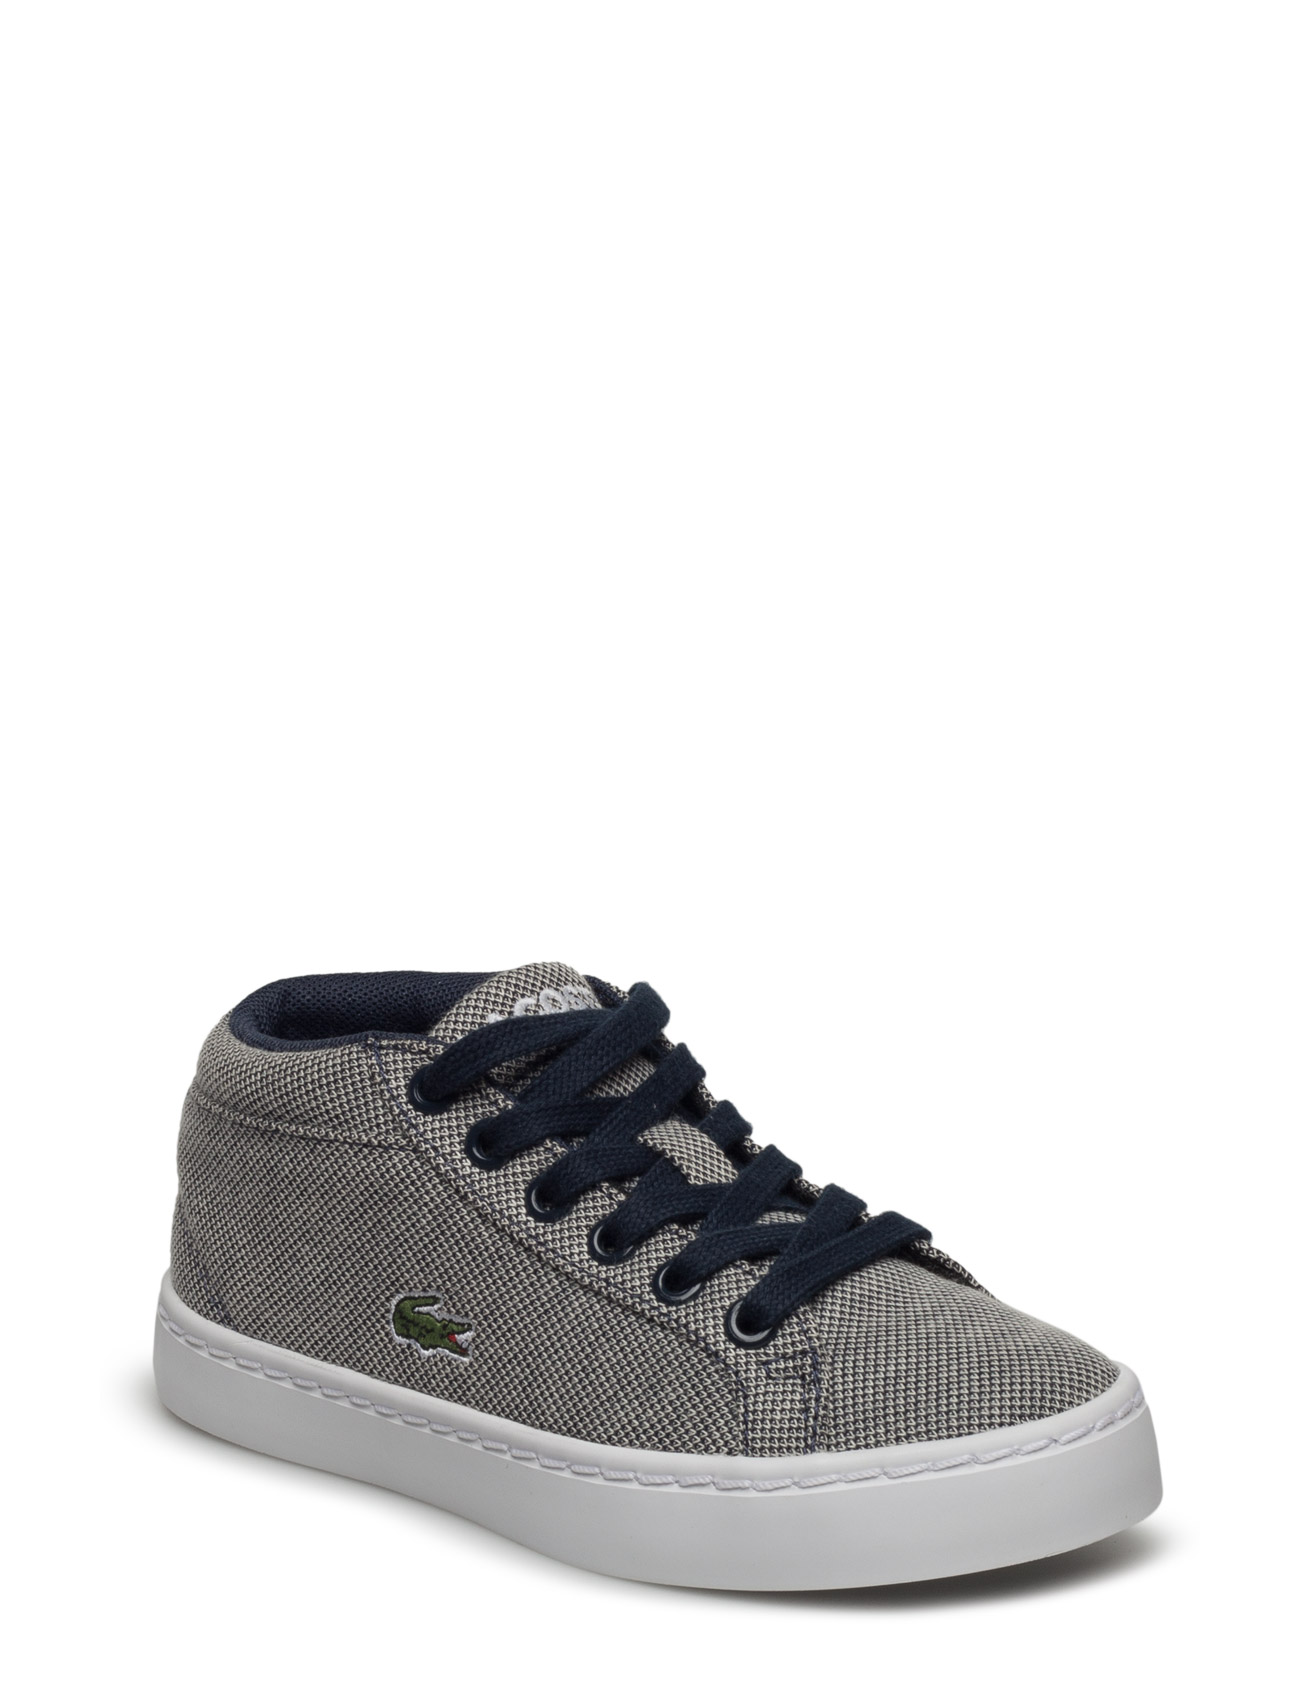 Lacoste Shoes Straightset Chuk2172